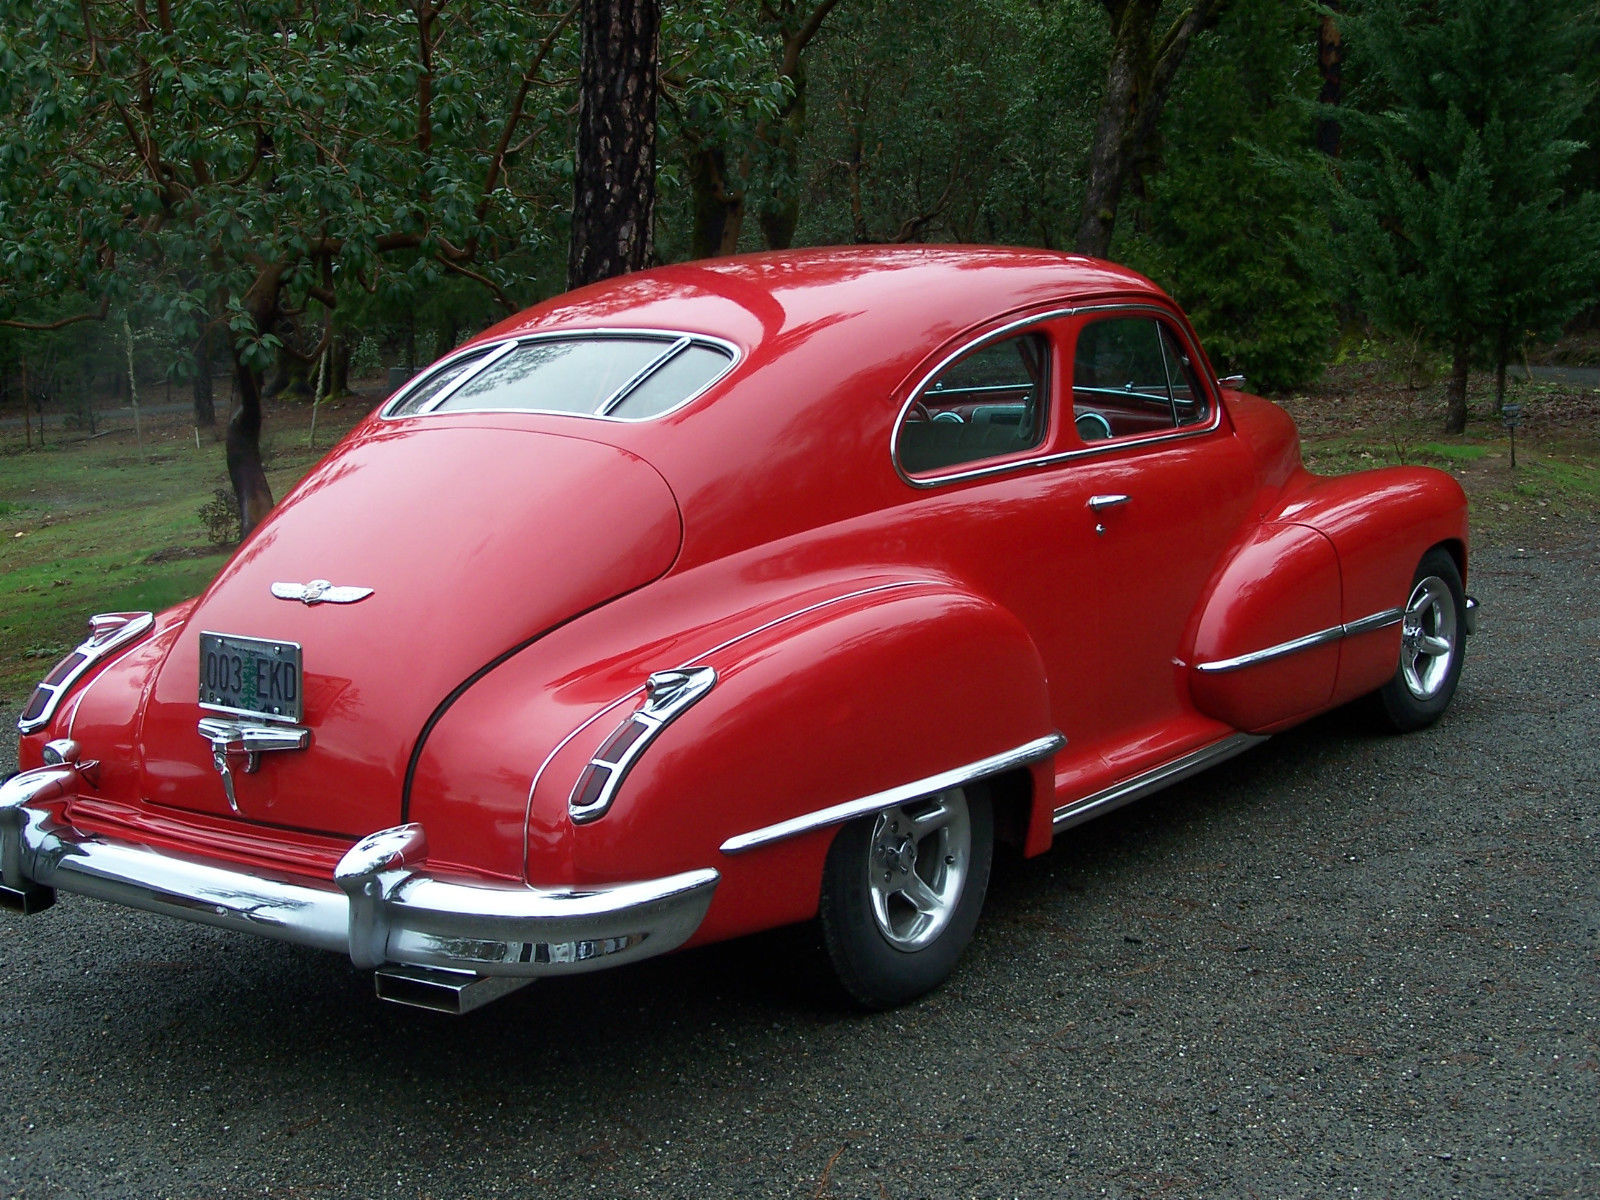 1947 Cadillac Coupe Deville